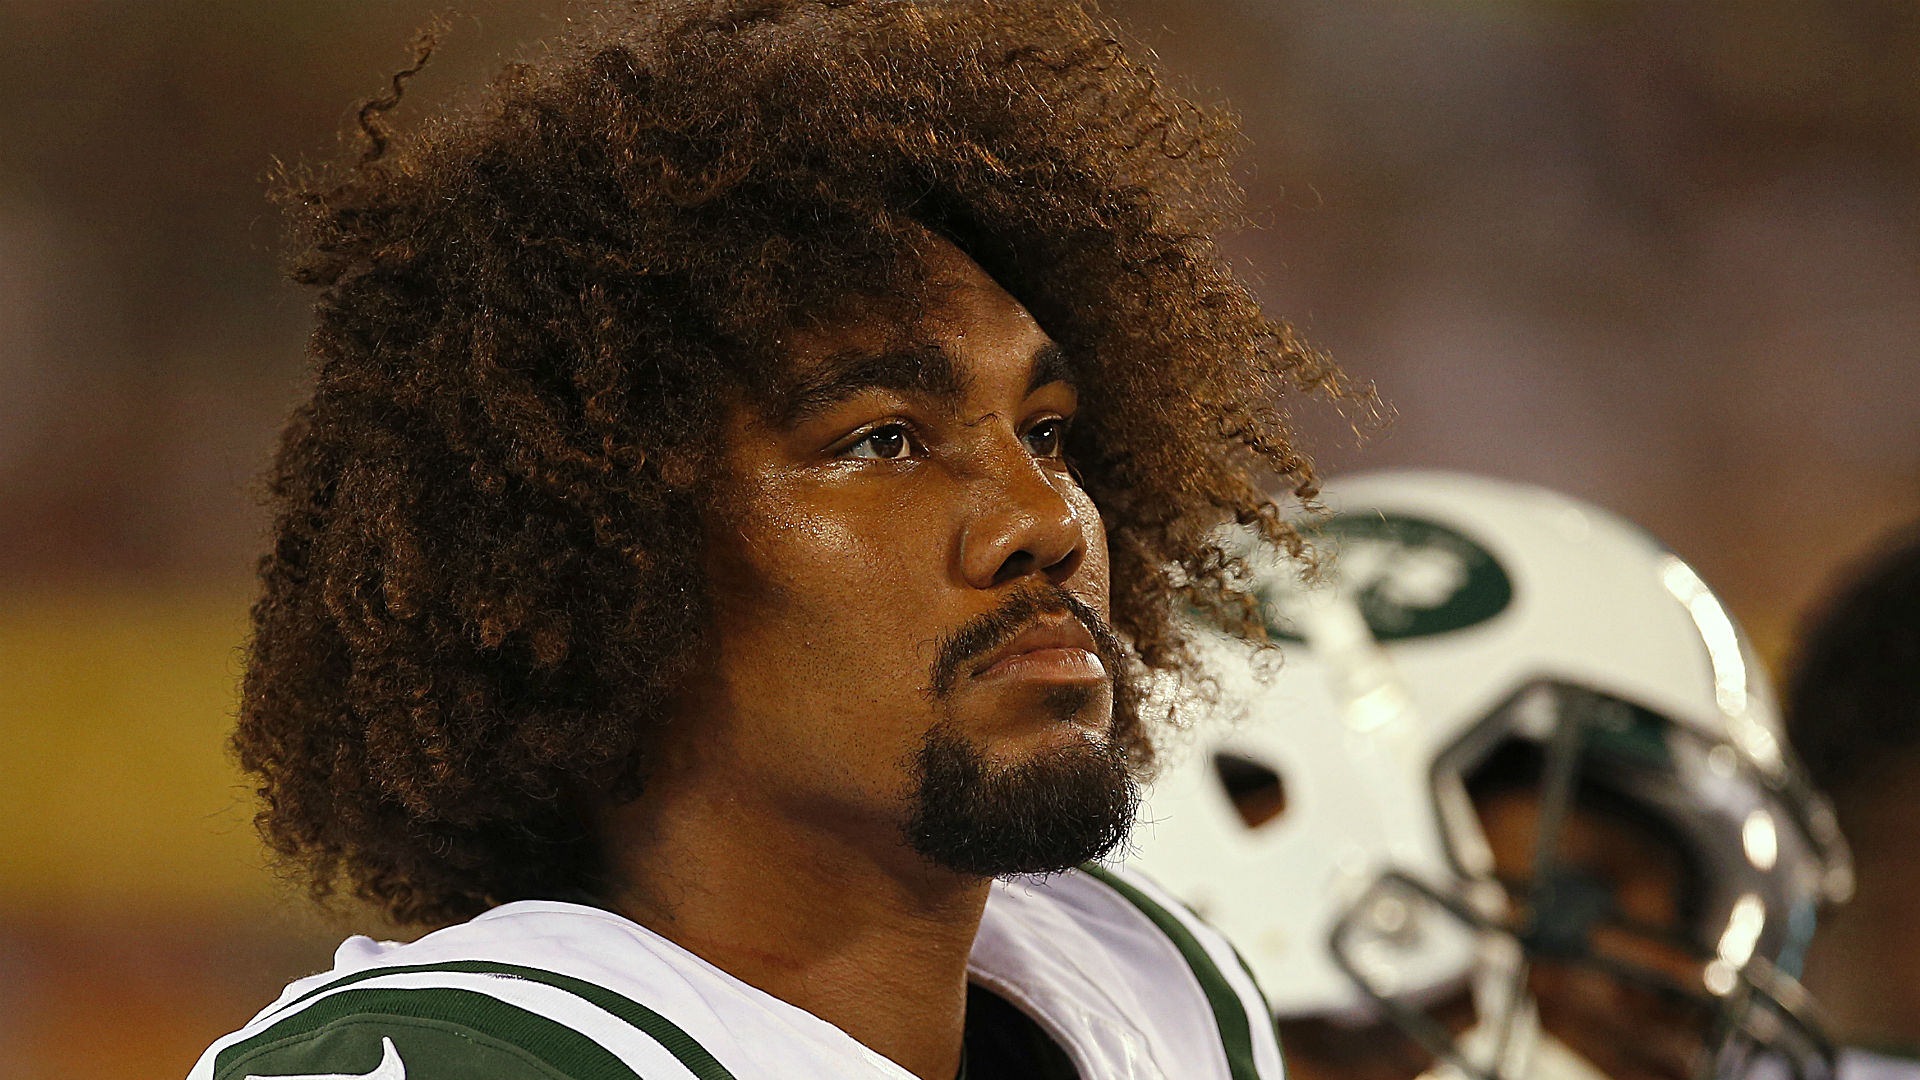 Video shows Leonard Williams breaking up dispute